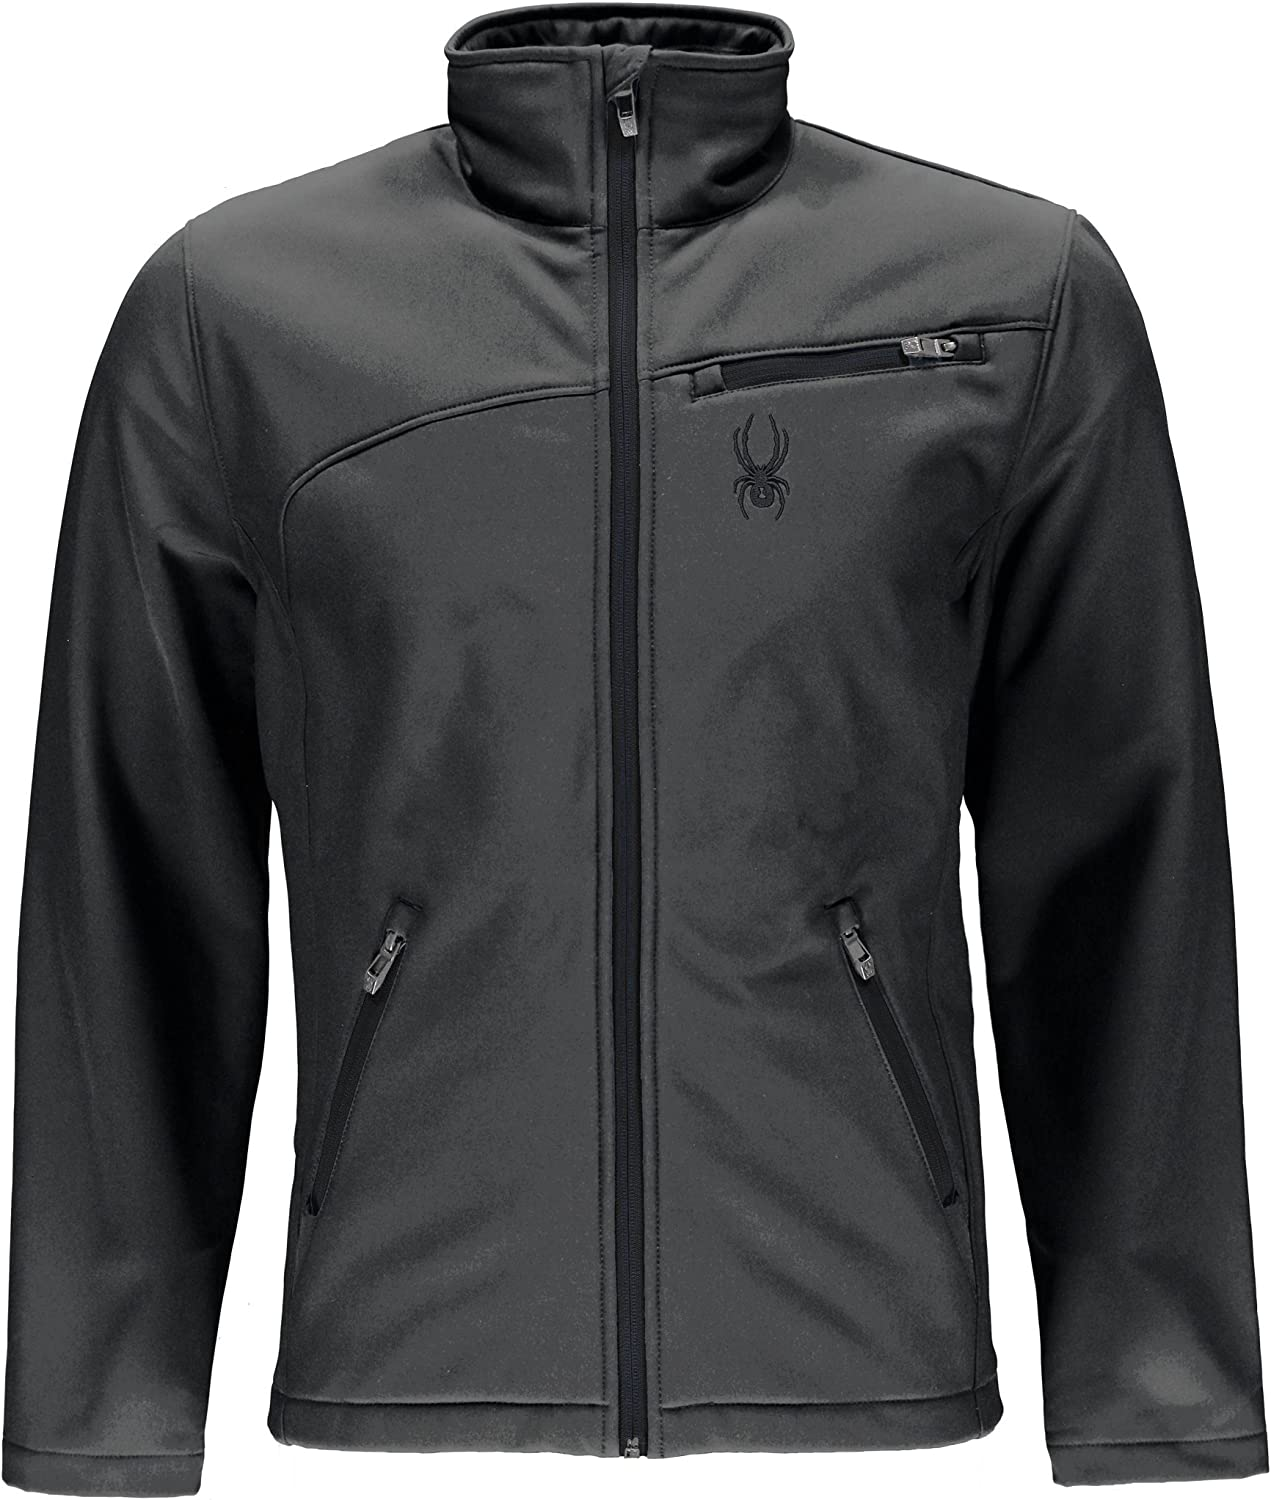 Spyder Men's Softshell Jacket: Clothing